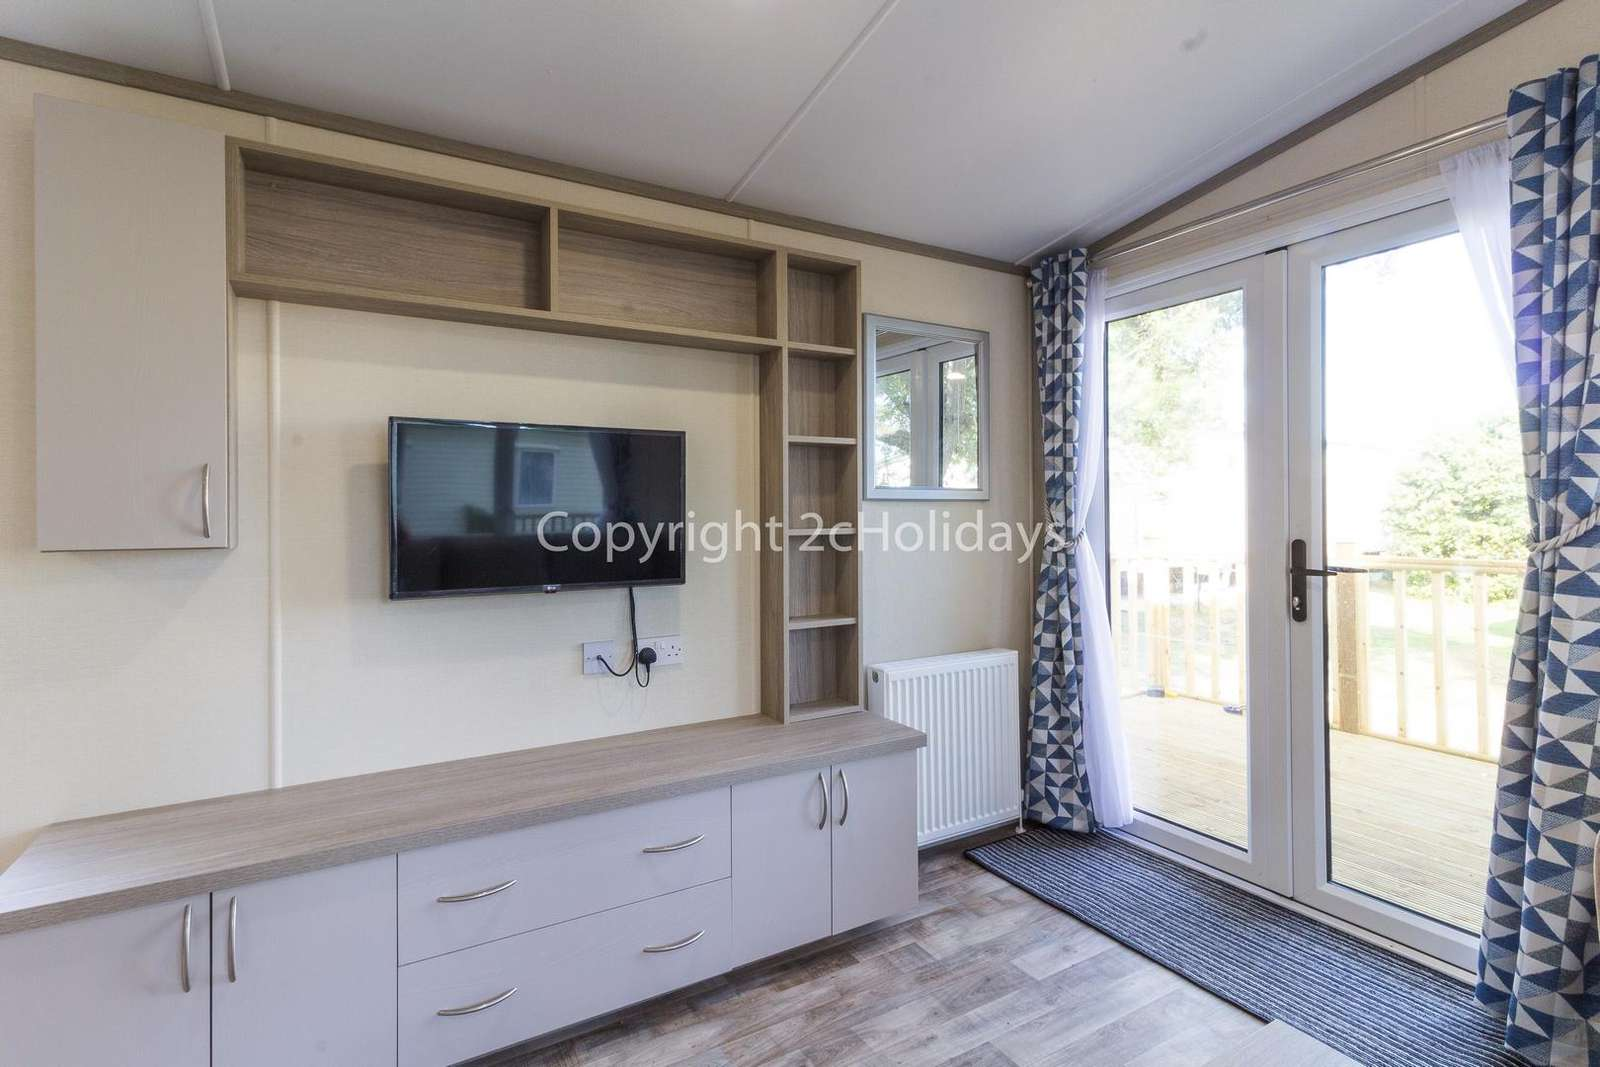 The ideal place to relax with your family in this cosy living area with a TV